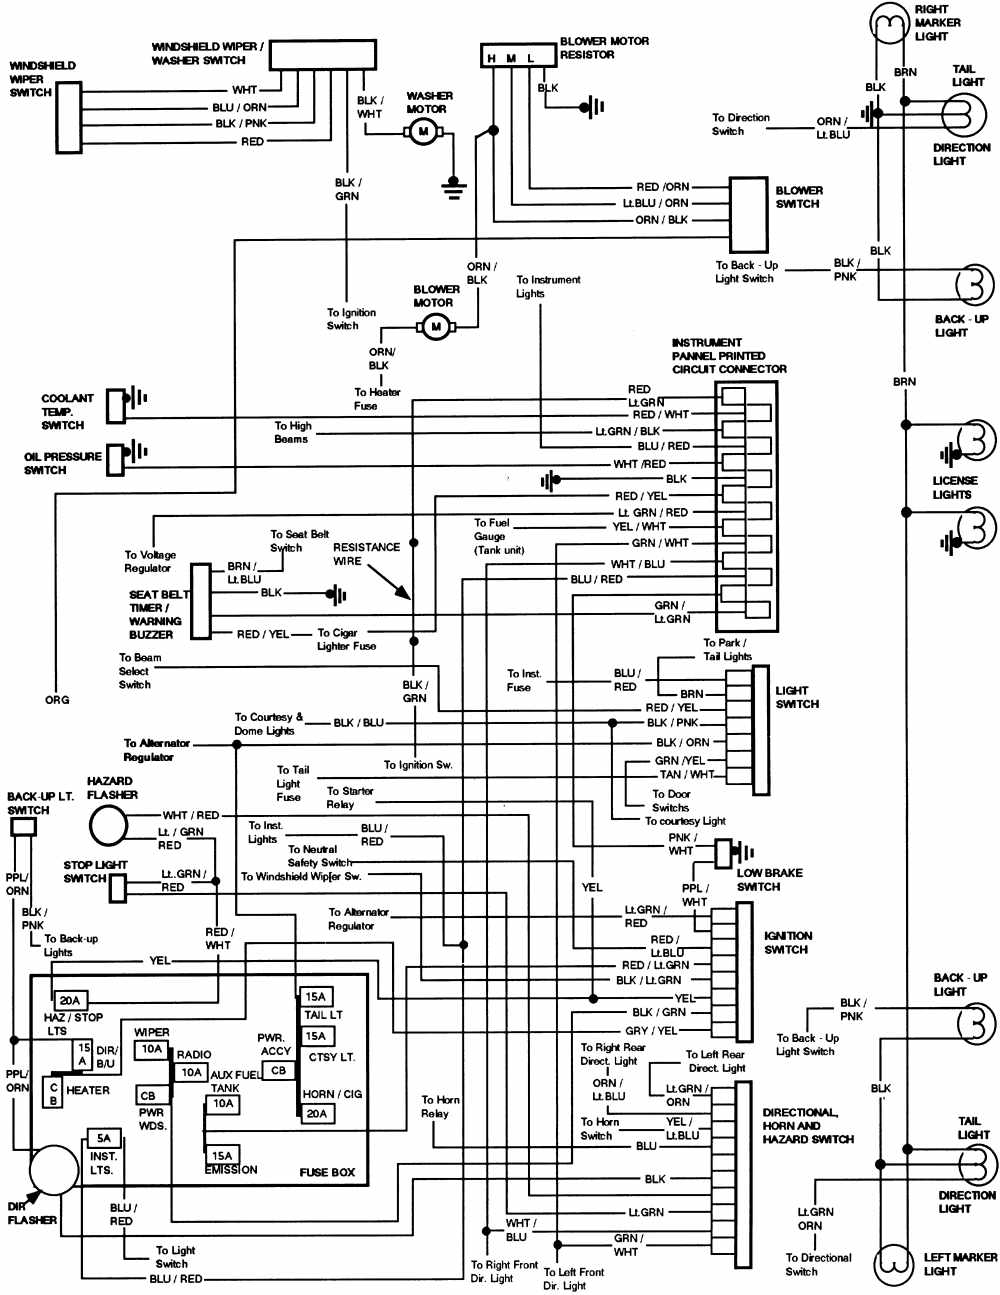 ford f650 super duty wire diagram